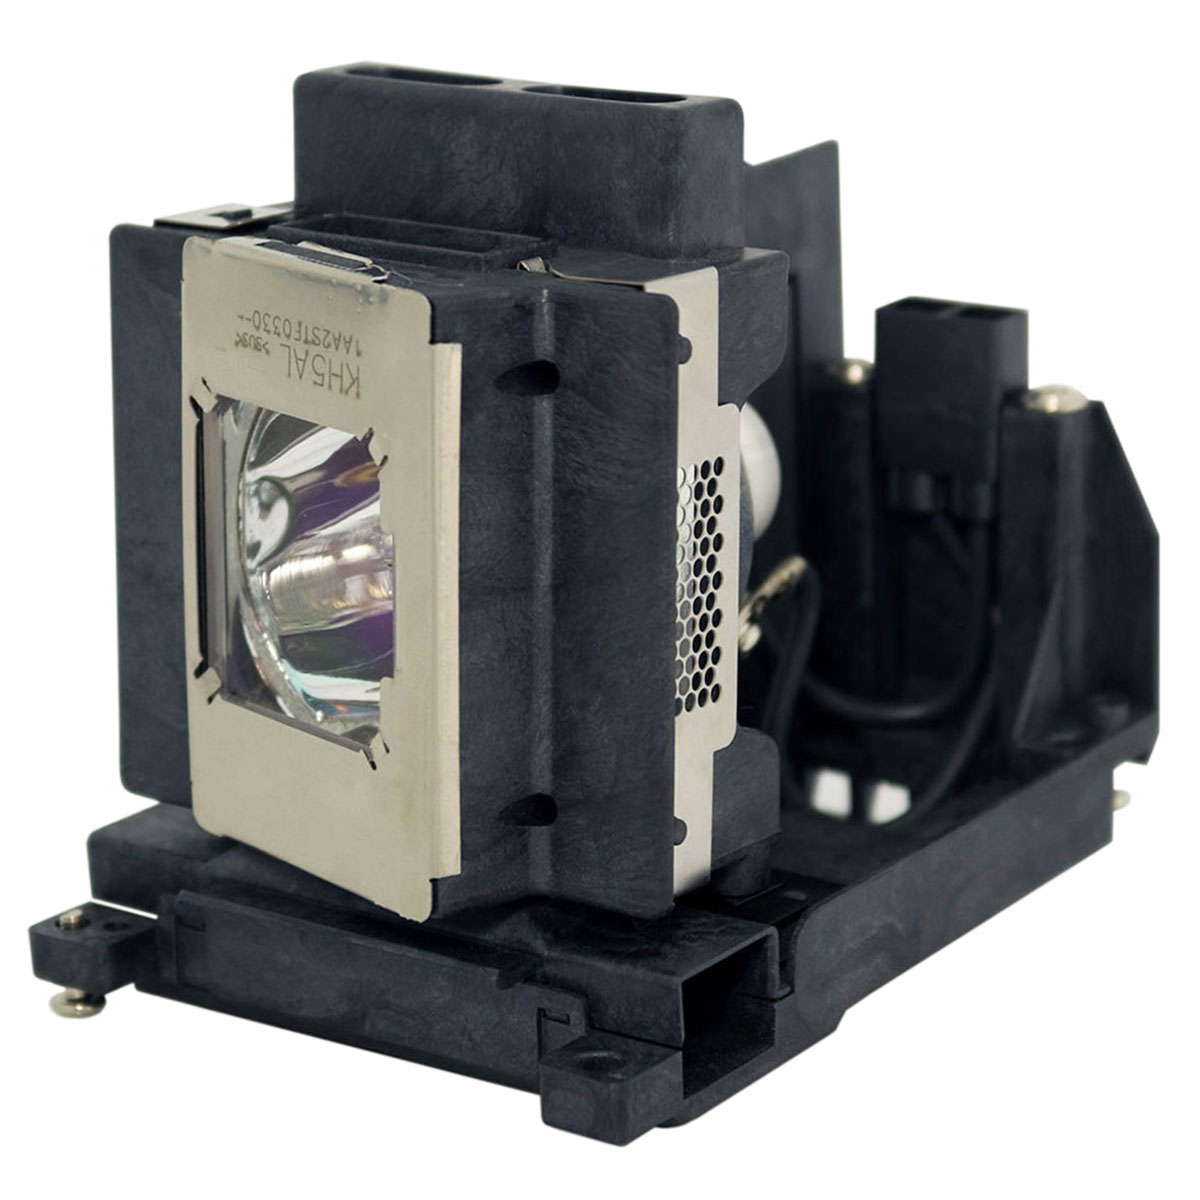 Lamp Housing For Eiki 610-350-6814 / 6103506814 Projector DLP LCD Bulb